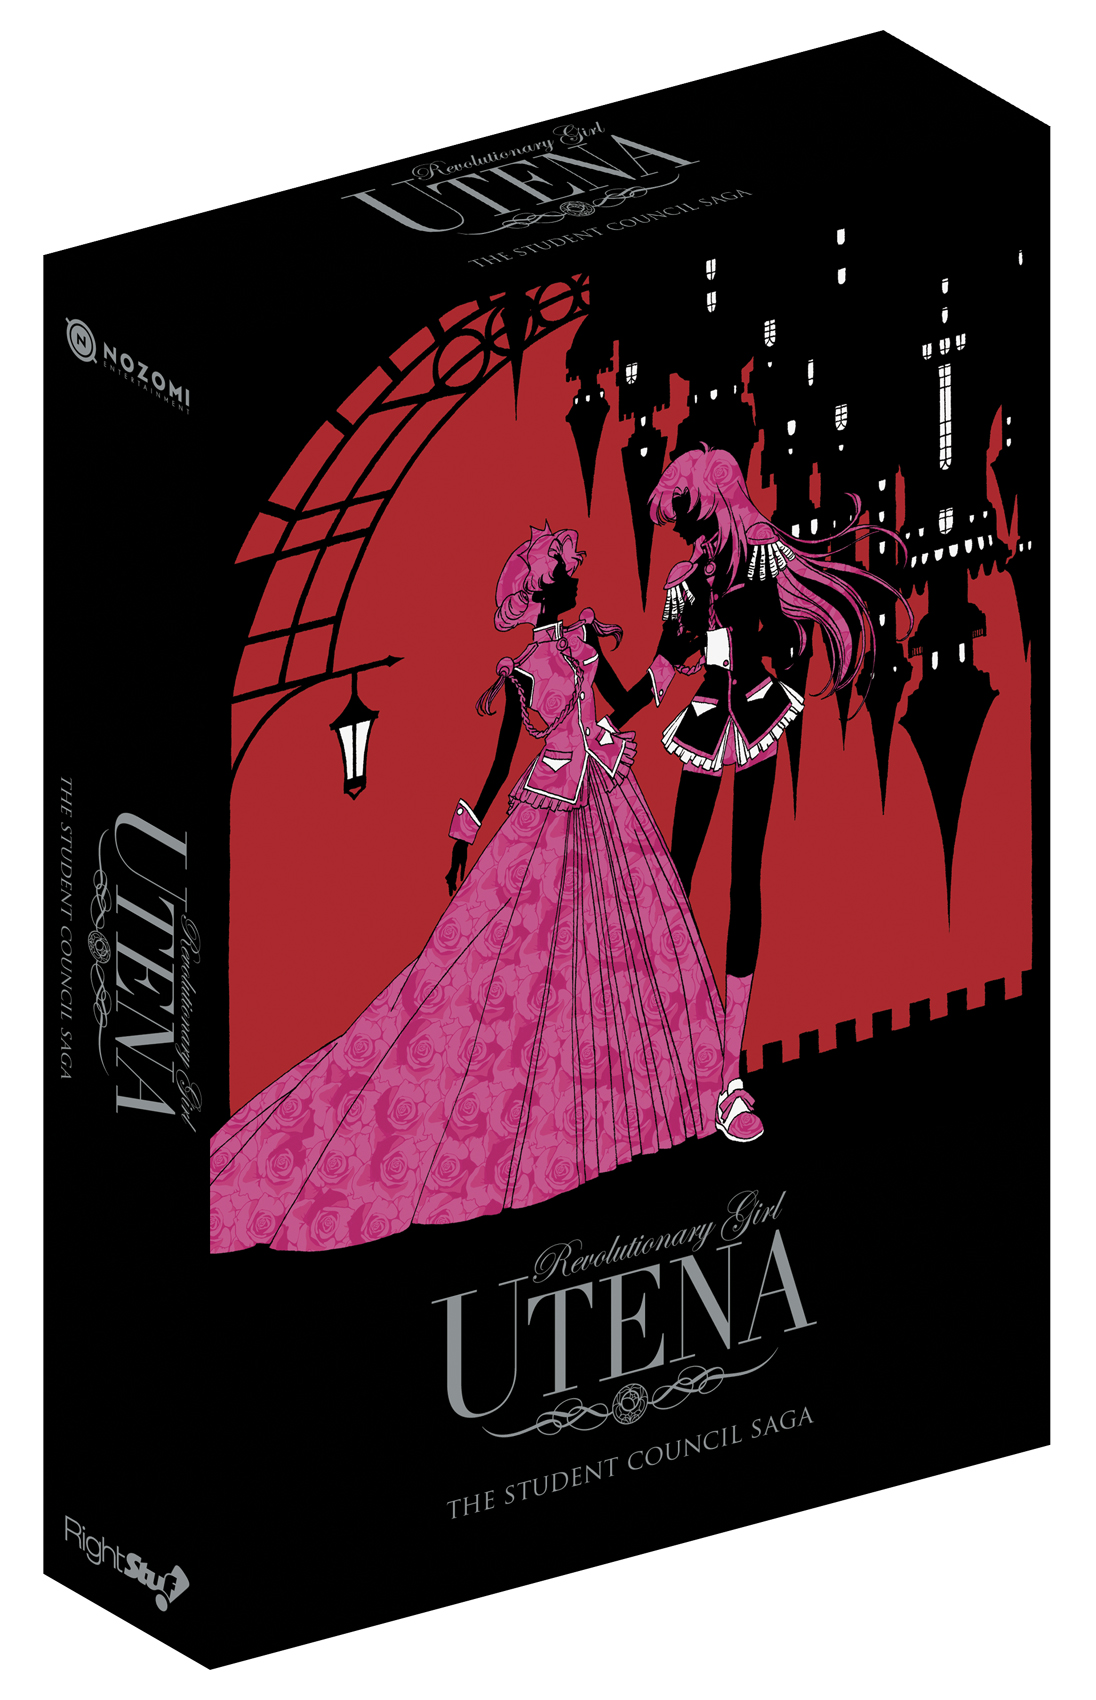 Revolutionary Girl Utena Set 1